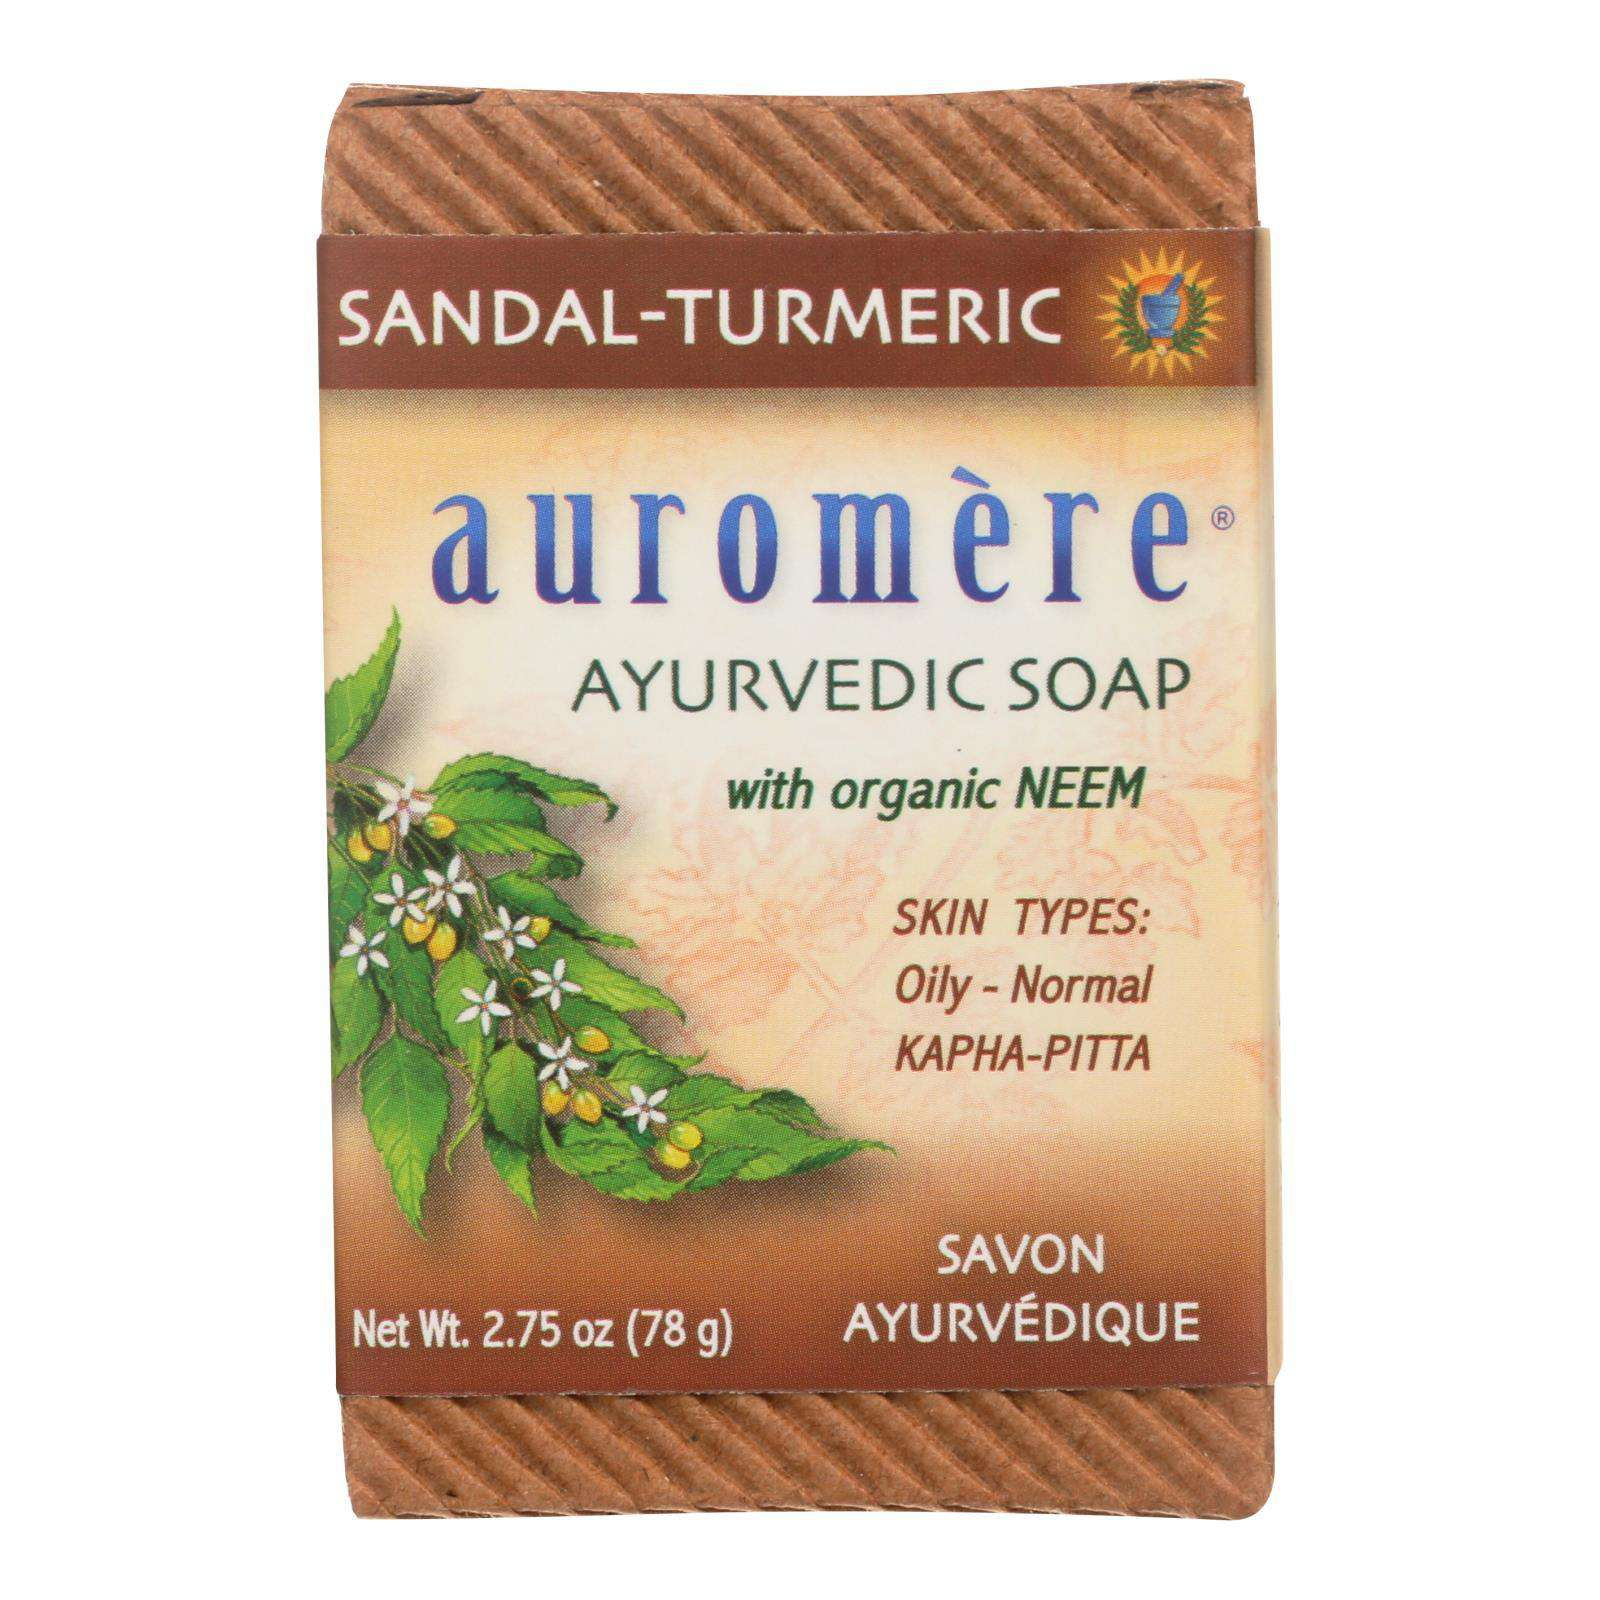 Auromere Ayurvedic Bar Soap Sandalwood-turmeric - 2.75 Oz - BeeGreen